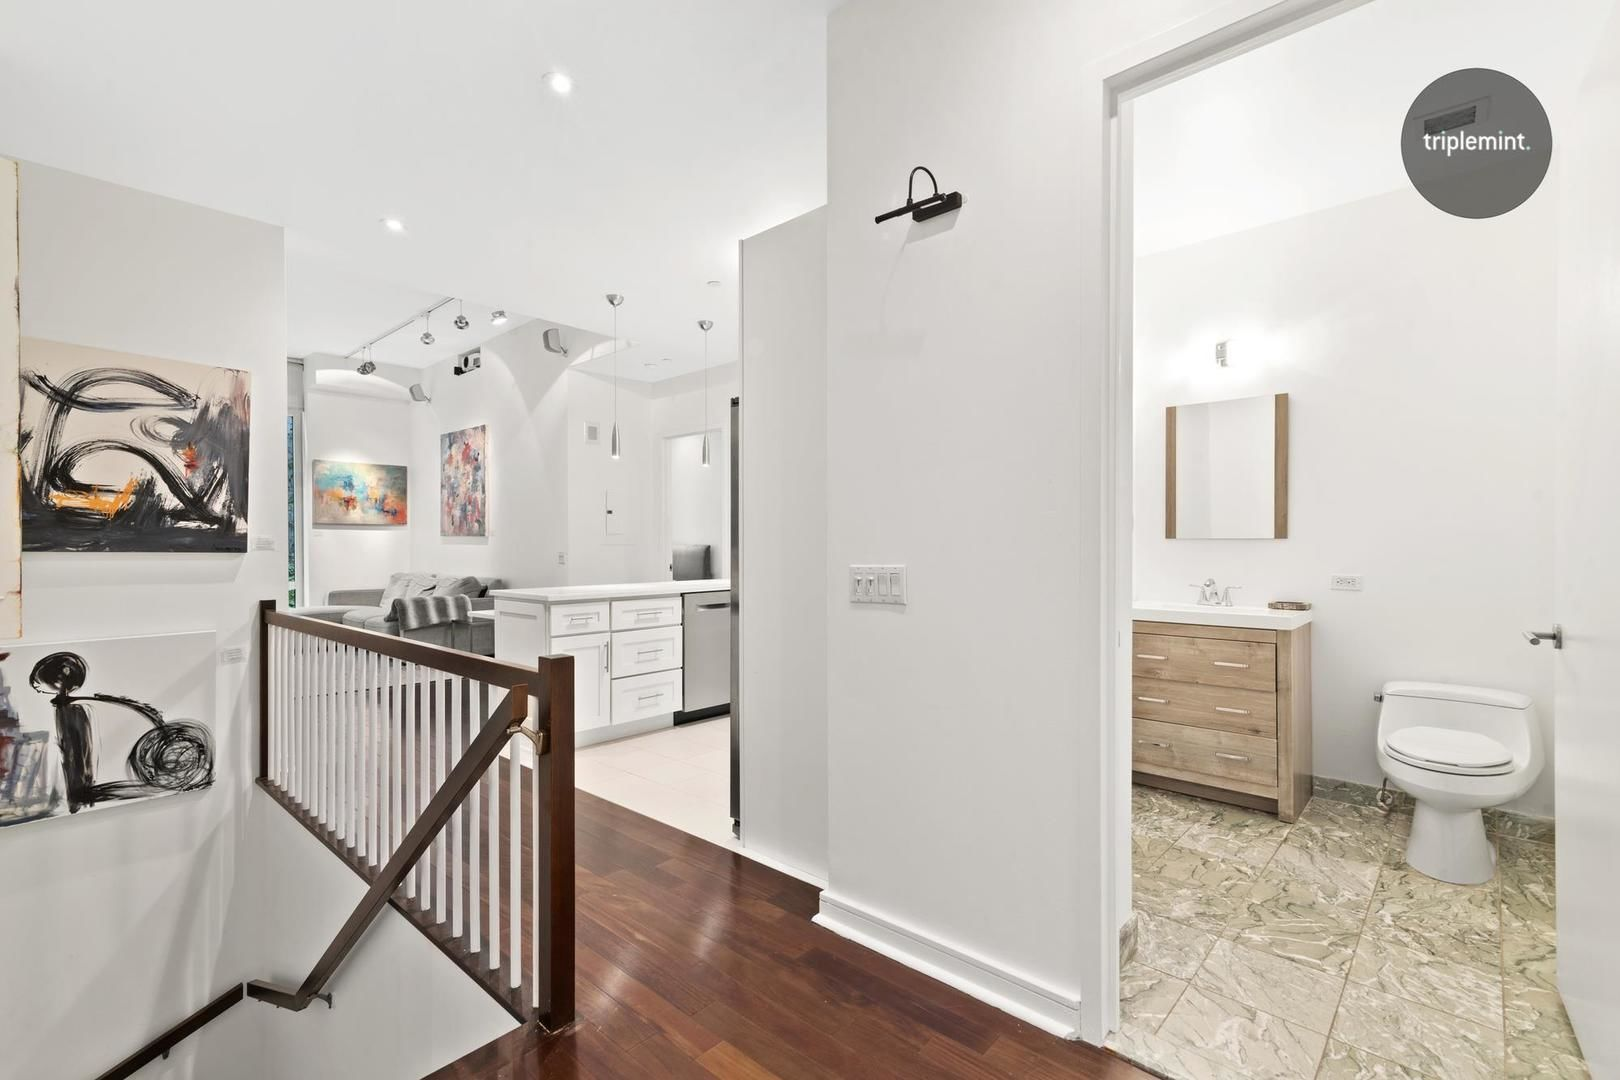 Apartment for sale at 130 West 19th Street, Apt TH-F